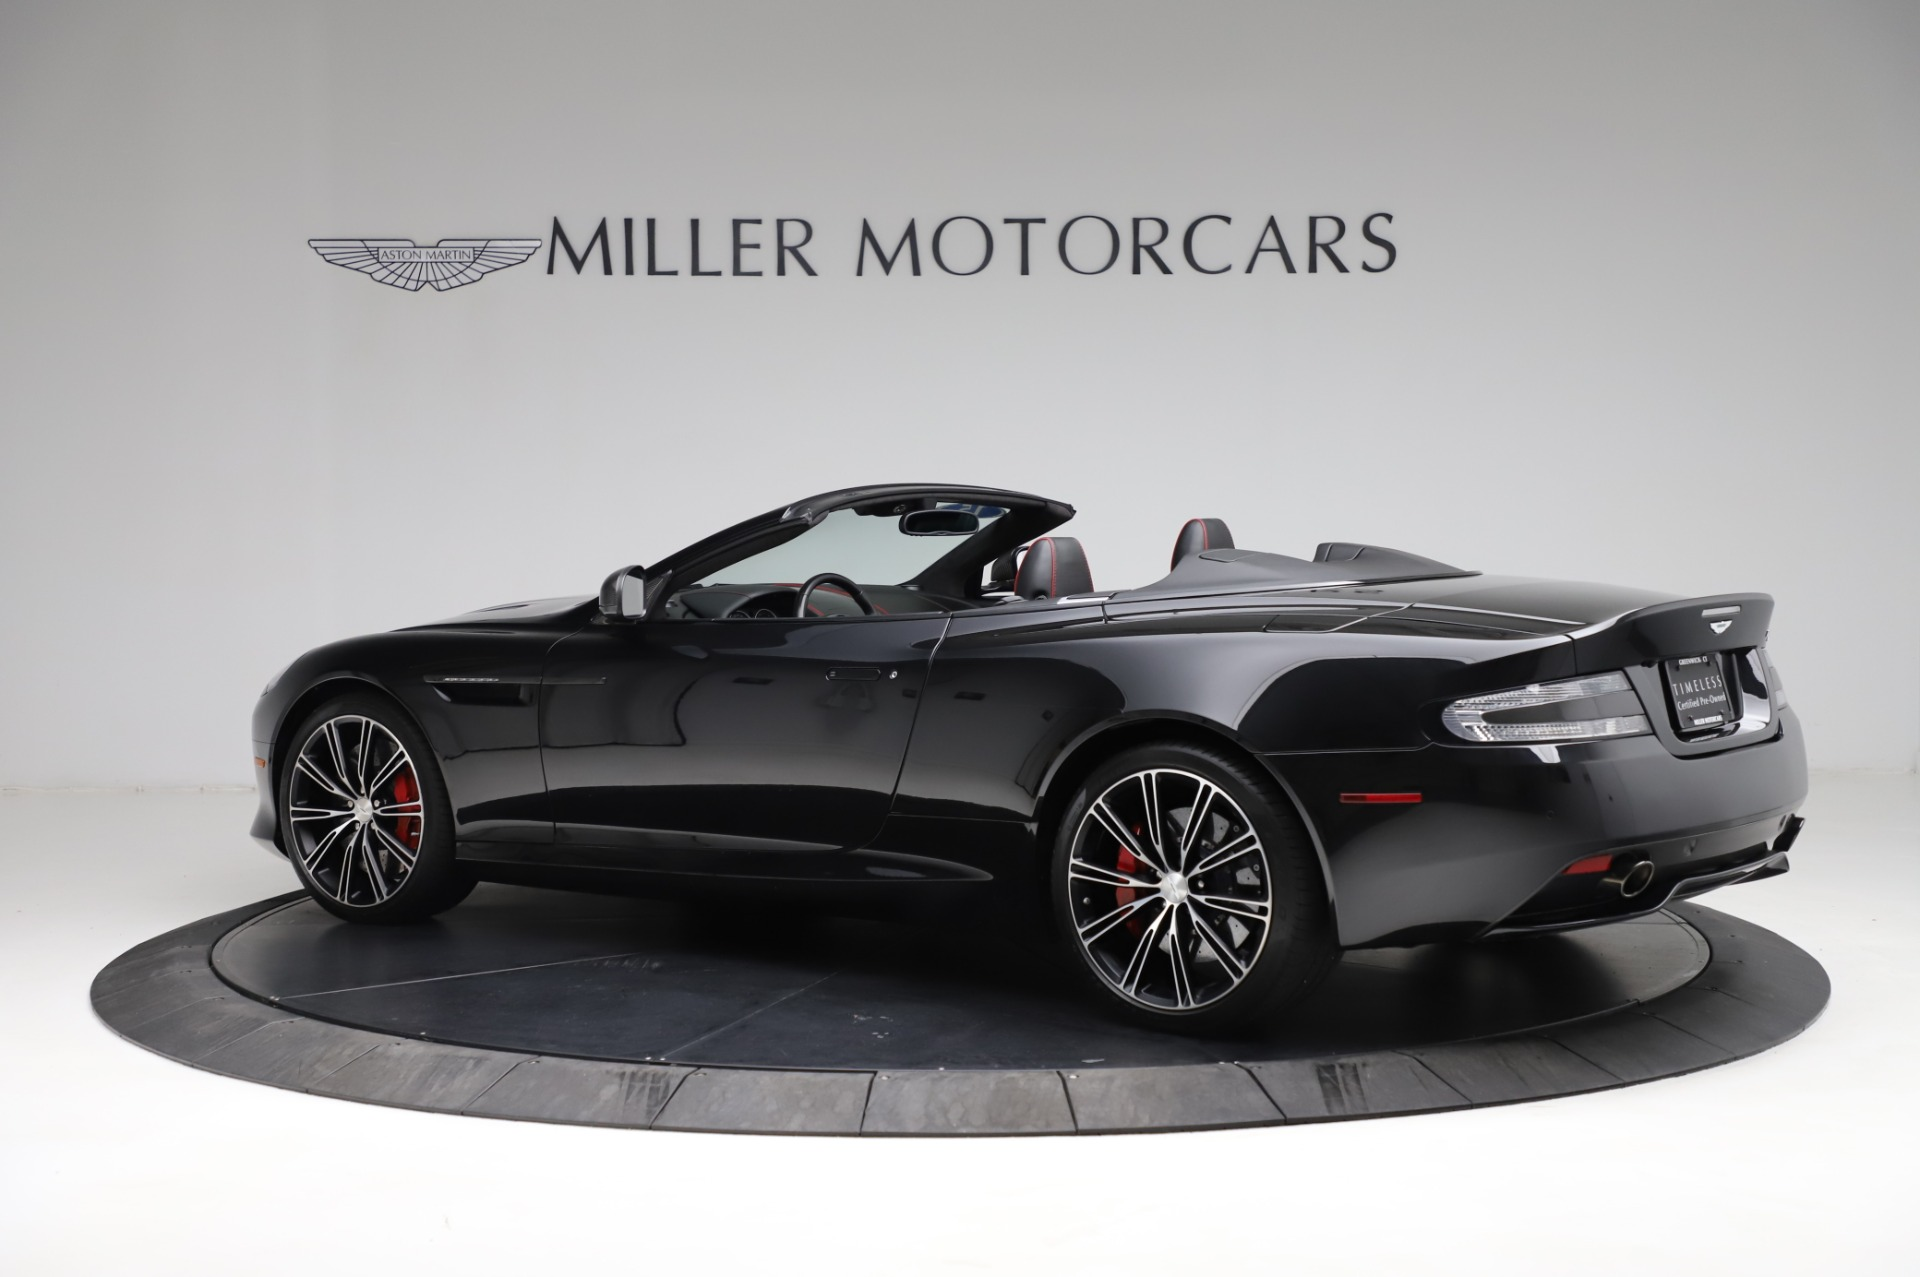 Used 2015 Aston Martin DB9 Carbon Edition Volante For Sale In Westport, CT 1919_p3